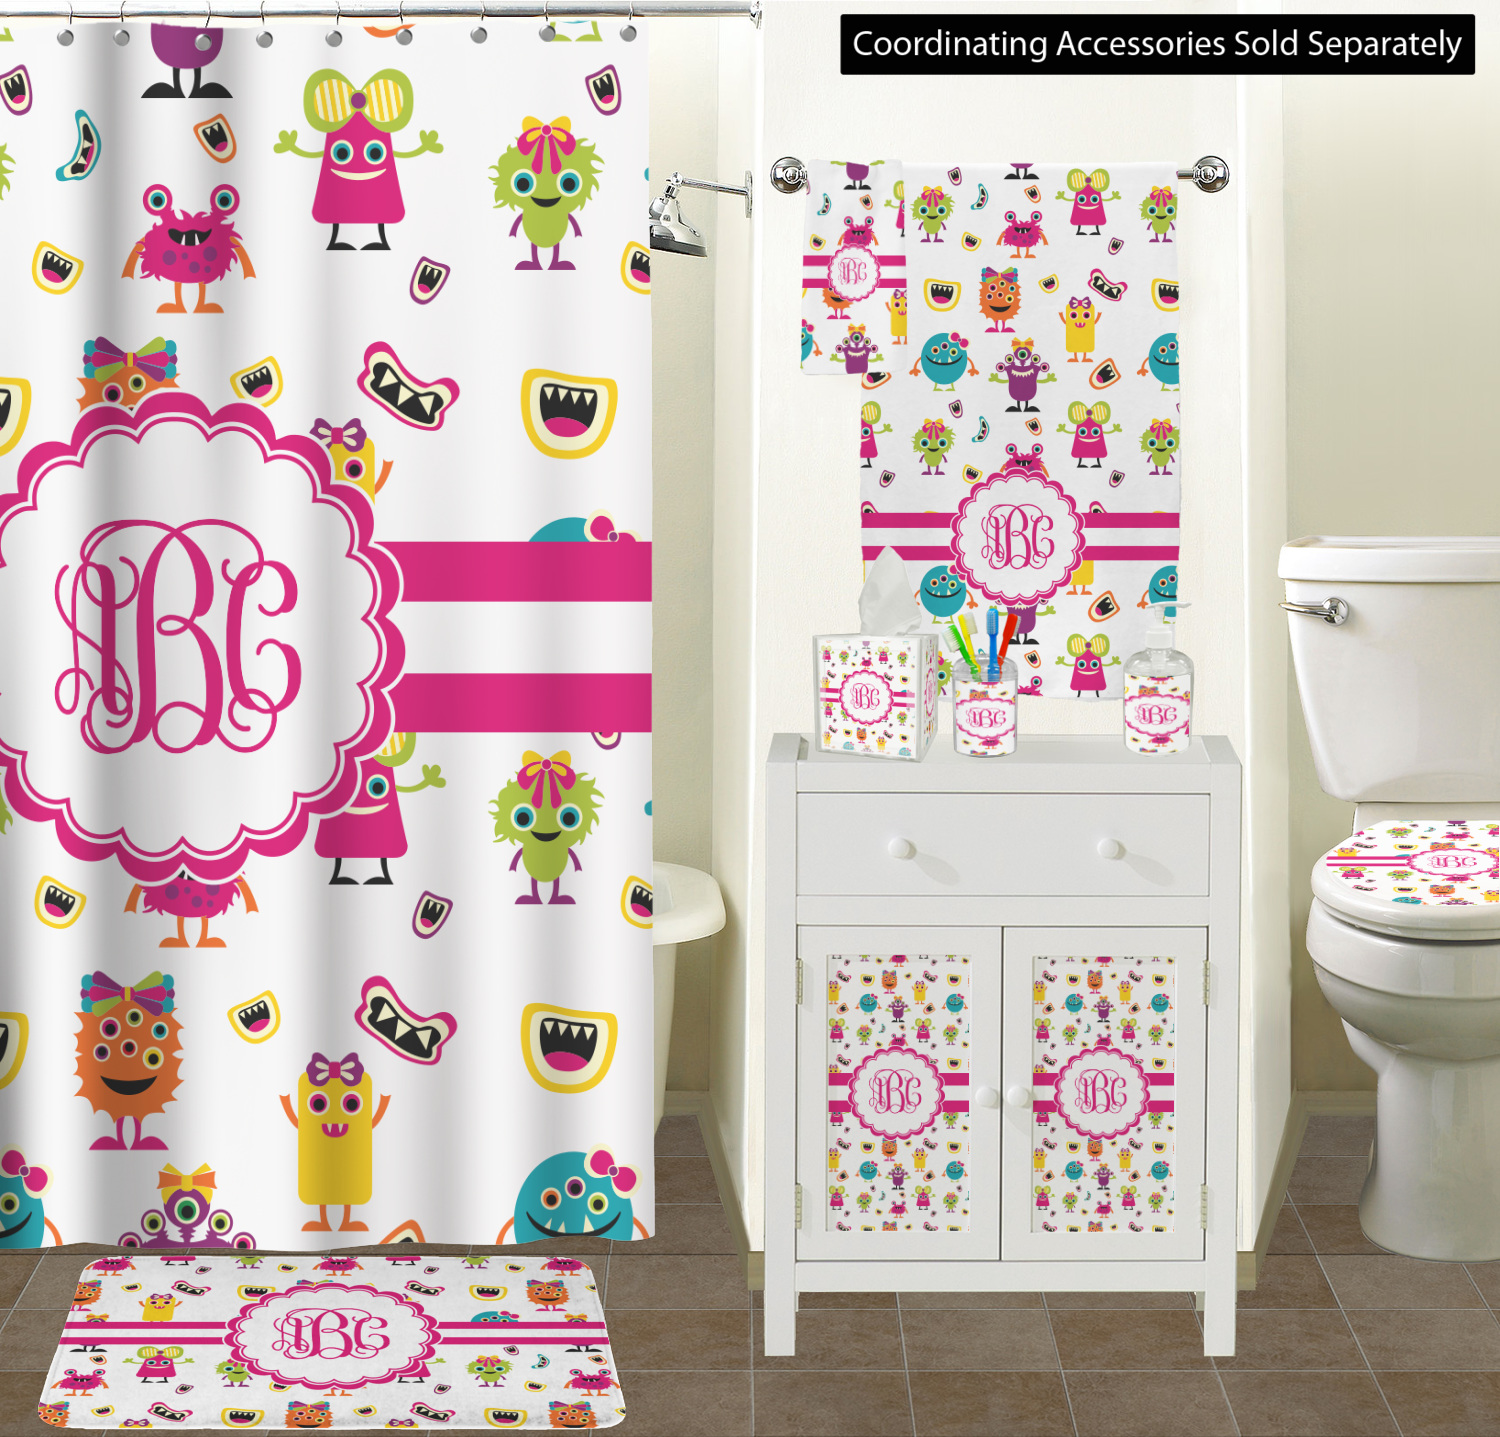 Girly Monsters Bathroom Scene